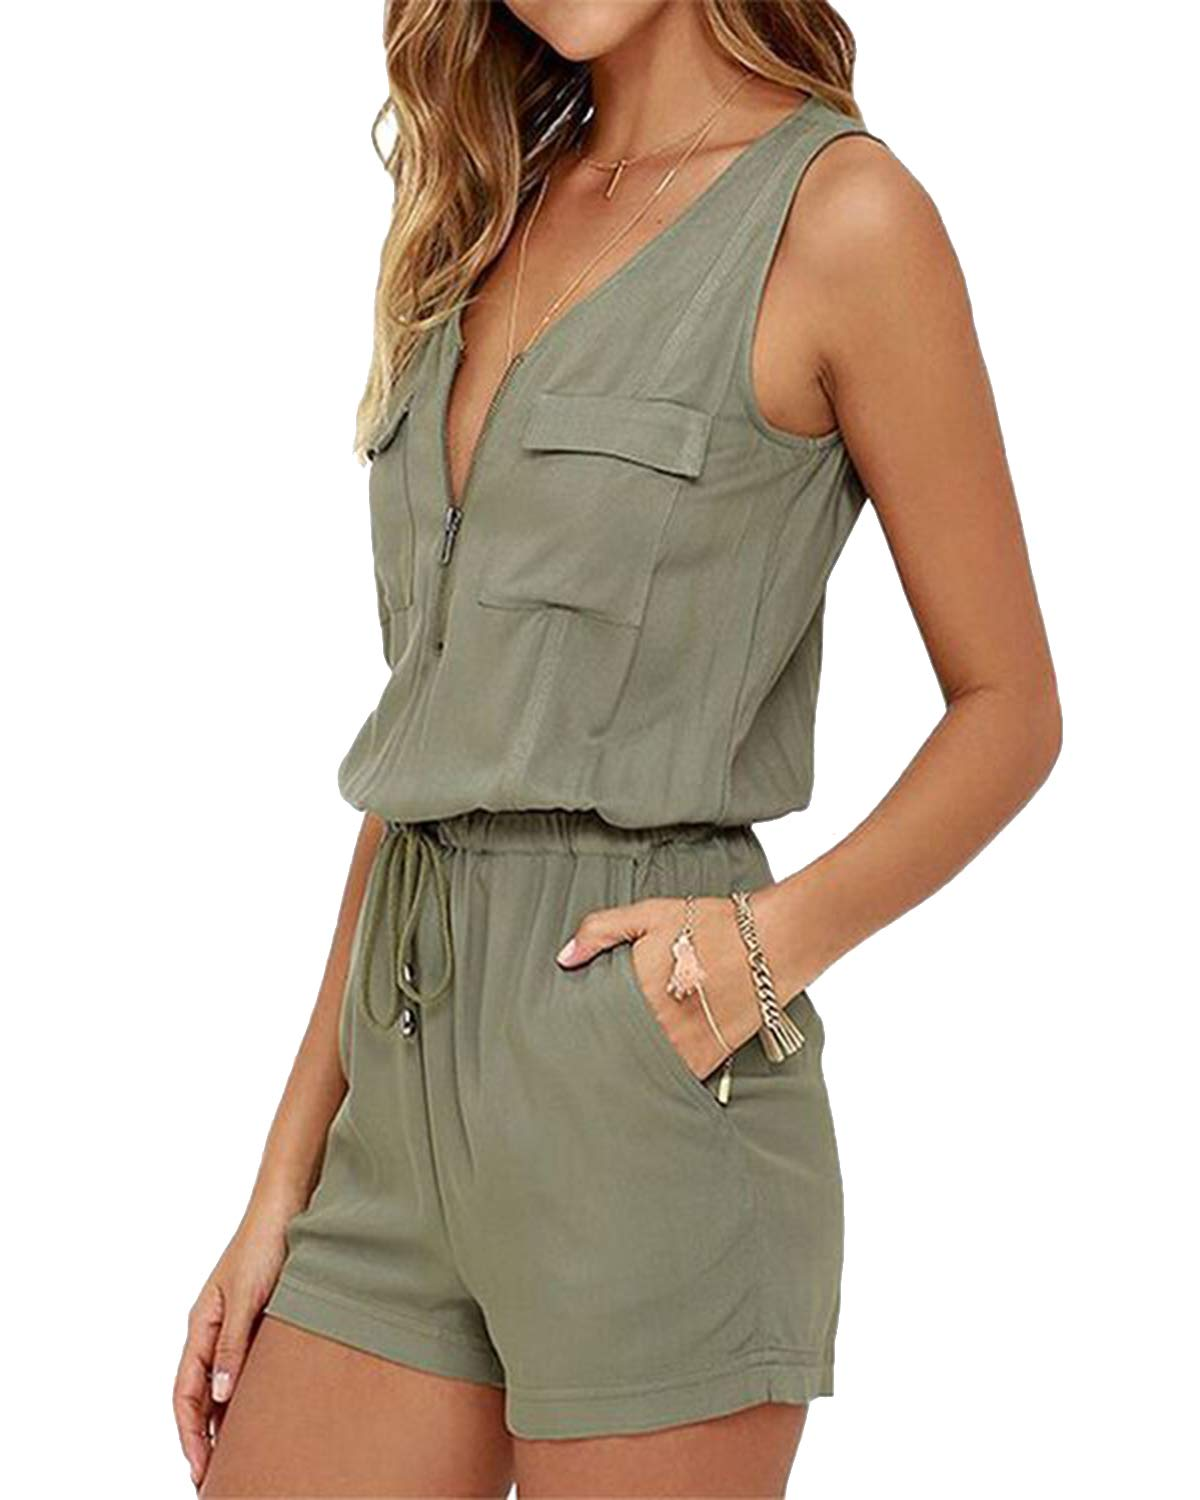 Celmia Women Sleeveless Romper Casual Short Jumpsuit Playsuit with Pocket Zipper Green L by Celmia